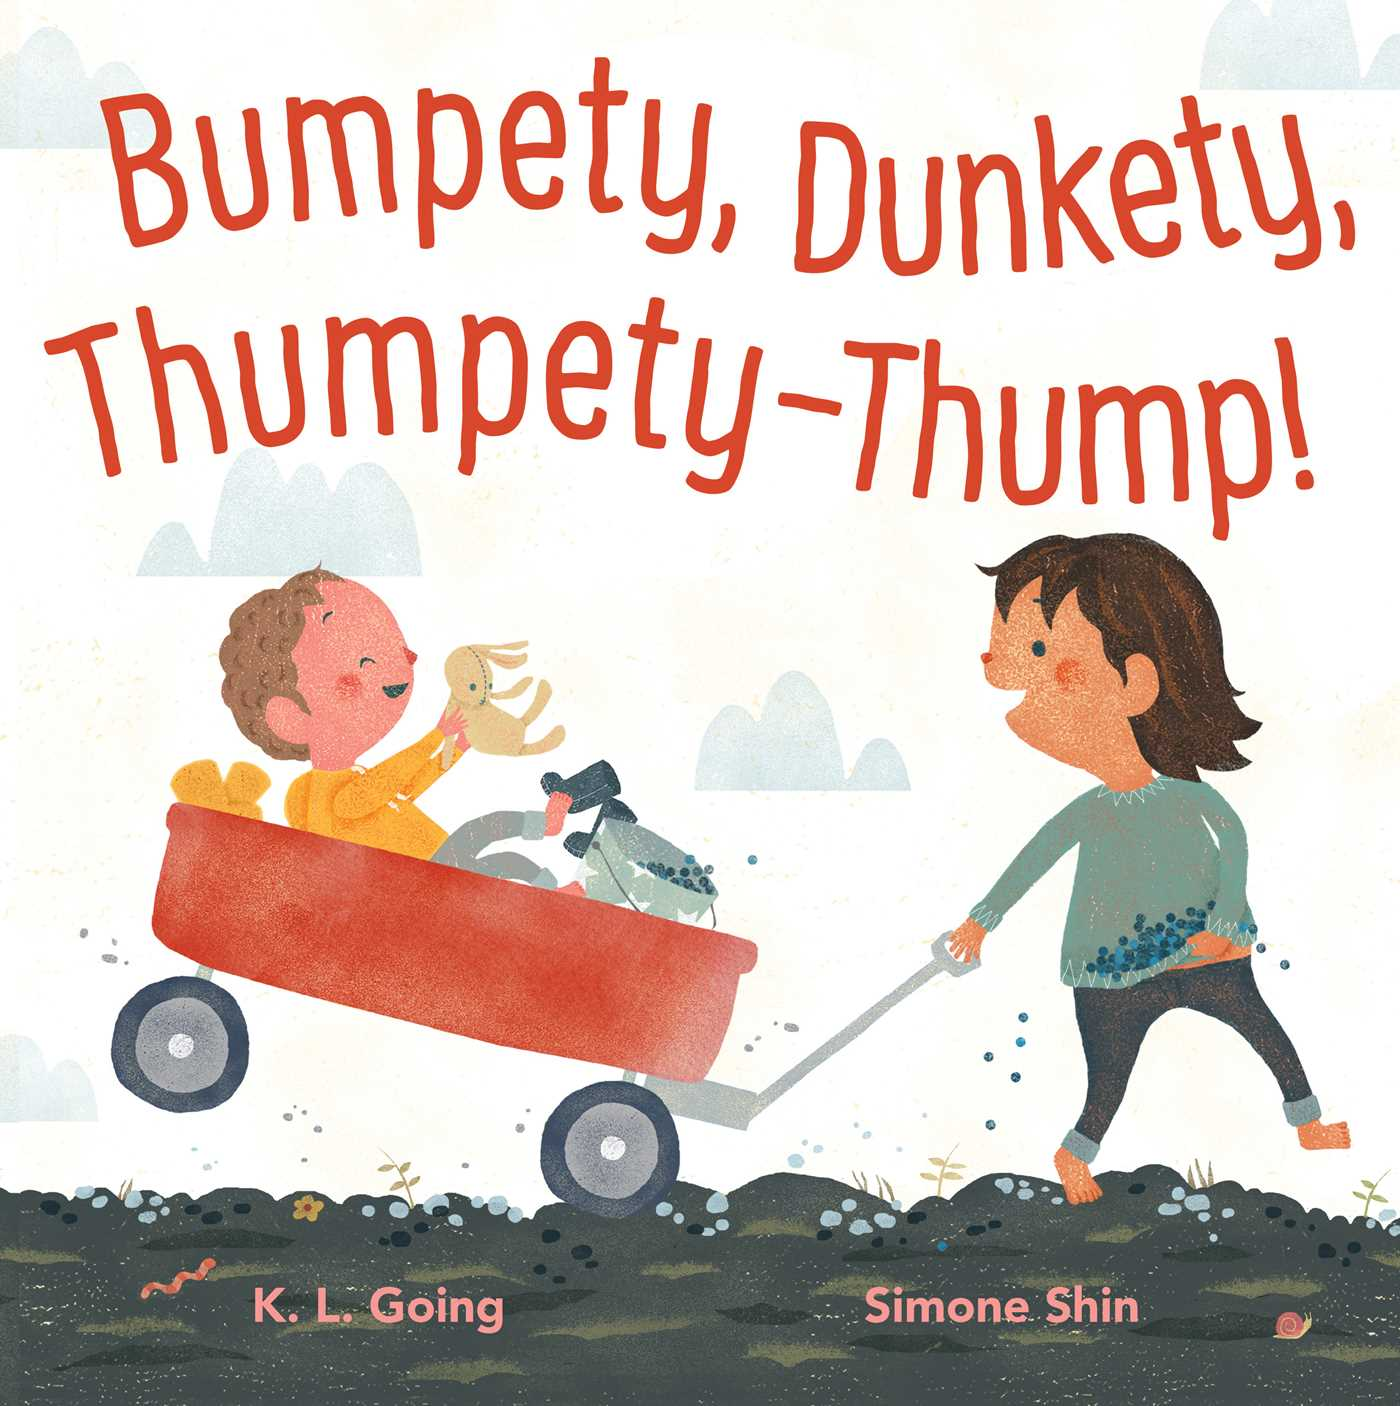 Bumpety dunkety thumpety thump 9781442434141 hr